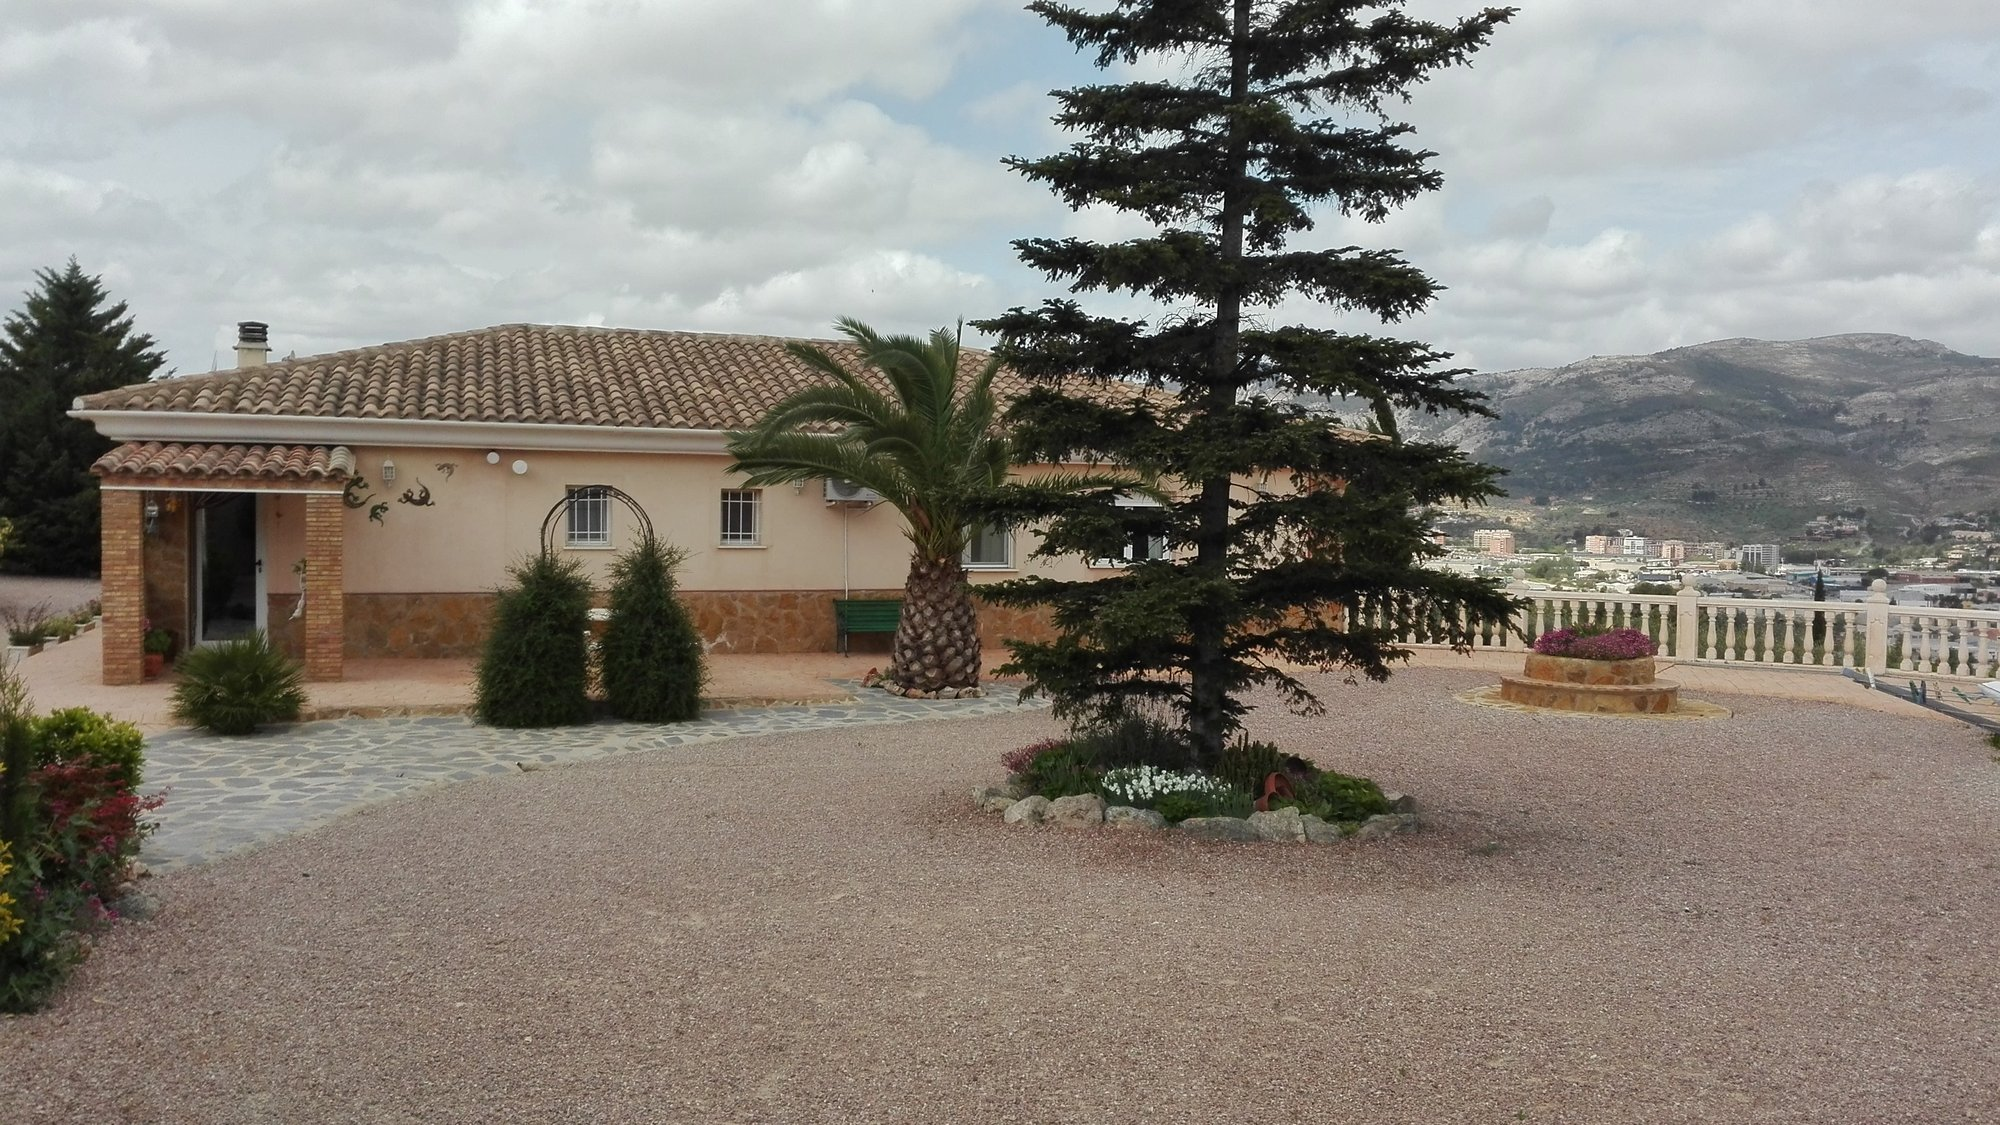 Ref:A15026 Villa For Sale in COCENTAINA